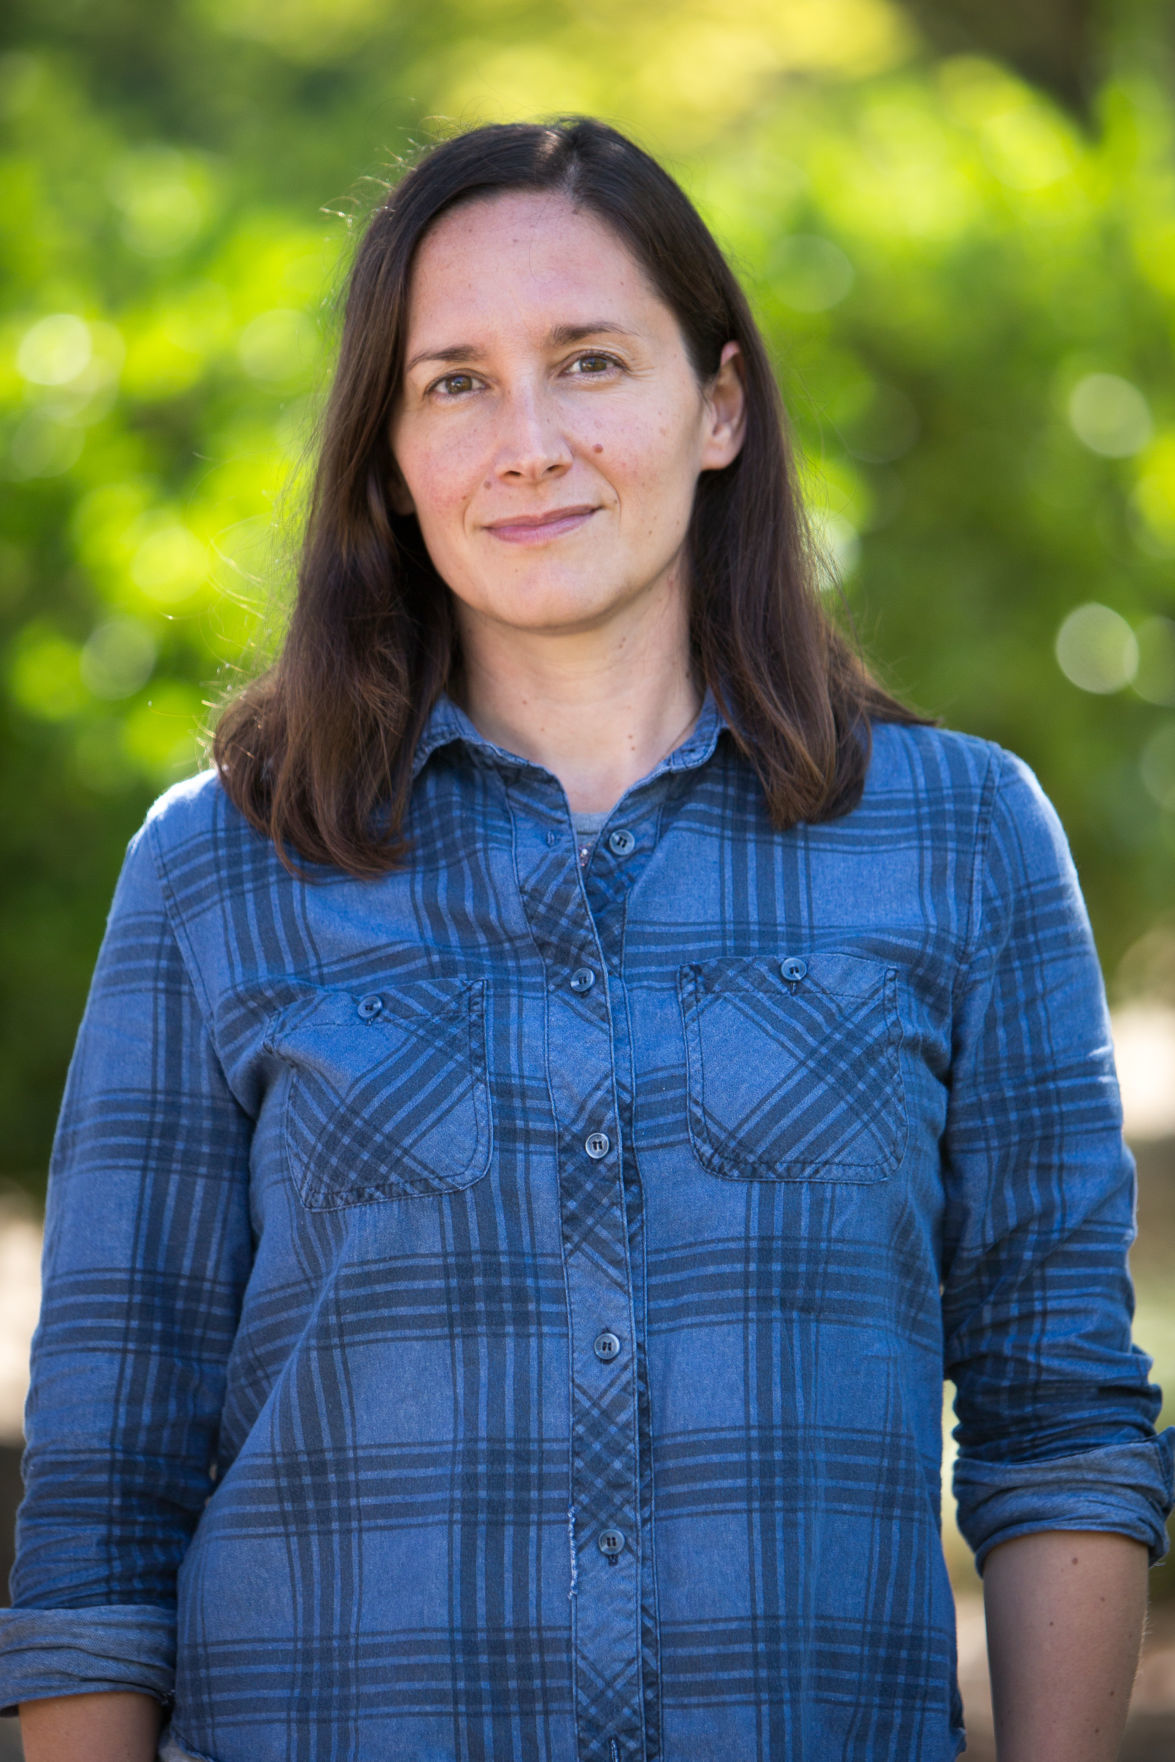 Laura Díaz Muñoz is Ehlers' new winemaker